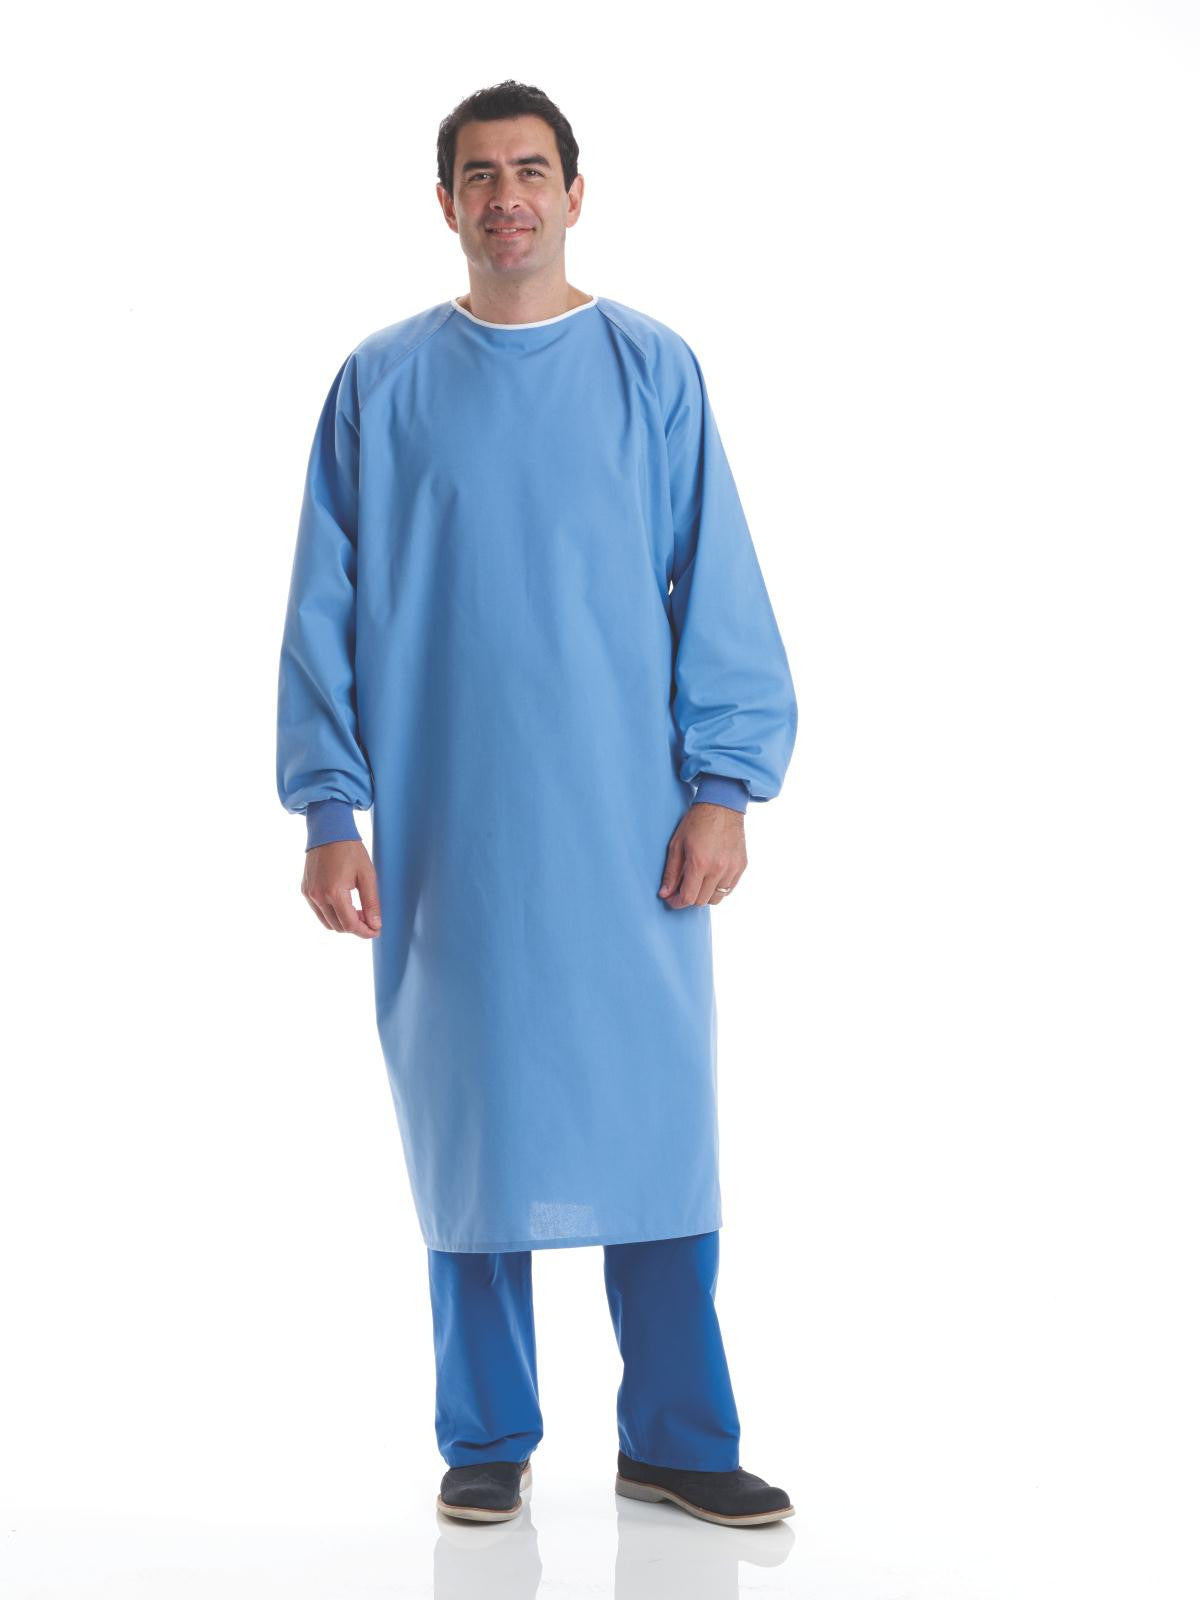 Cotton Blend Reusable Surgical Gown - BH Medwear